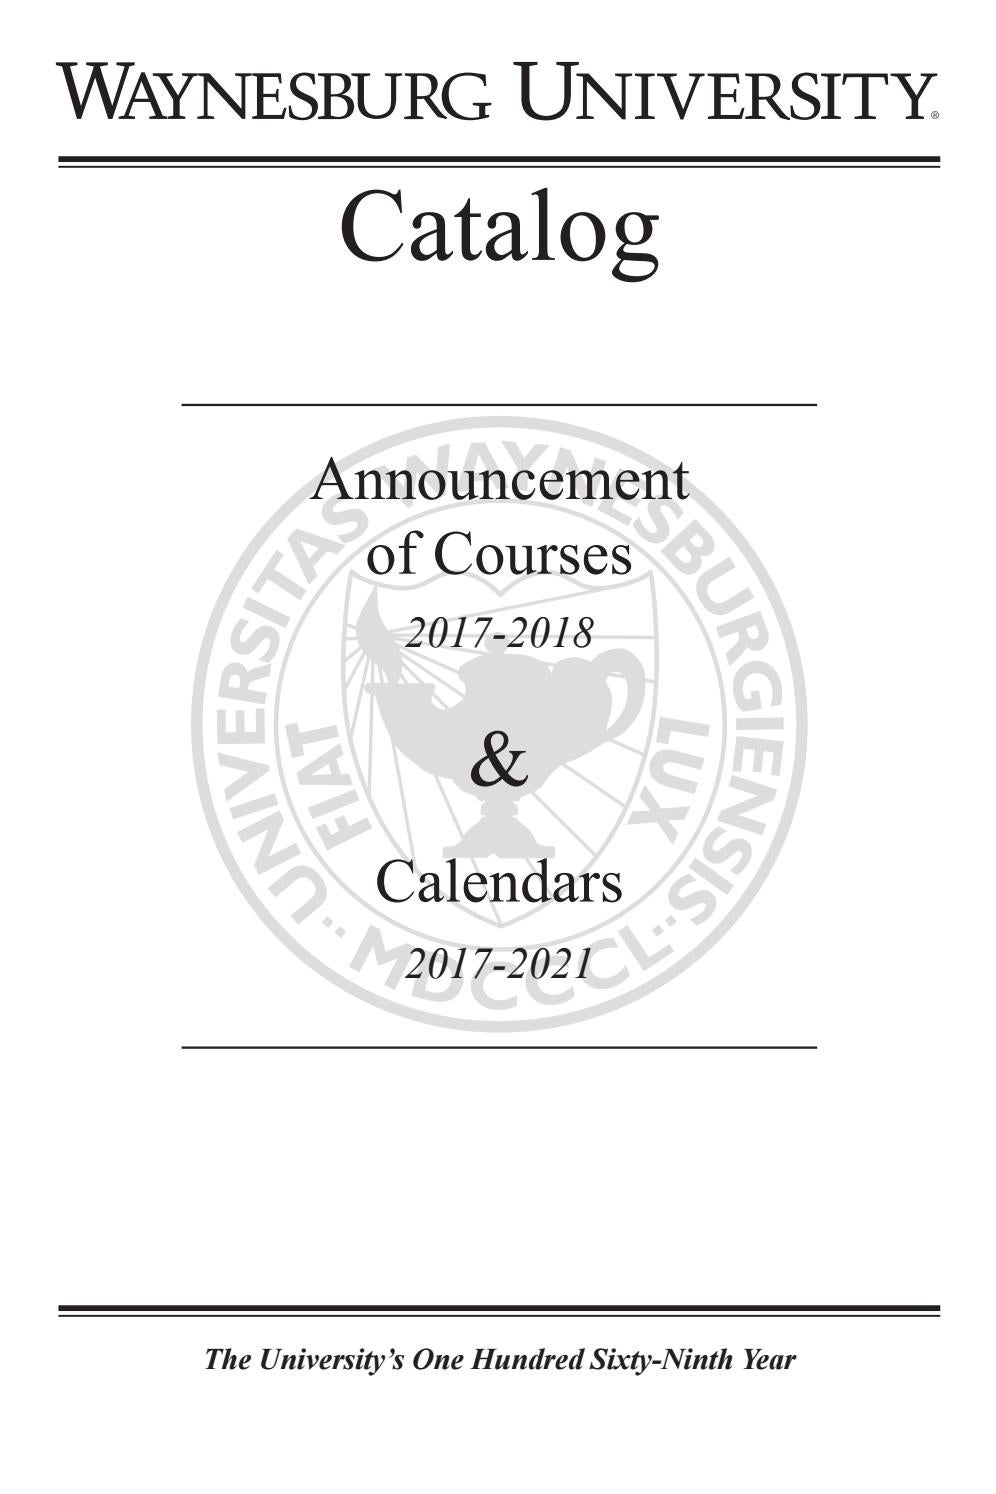 2017 2018 waynesburg university academic catalog by waynesburg 2017 2018 waynesburg university academic catalog by waynesburg university issuu fandeluxe Choice Image